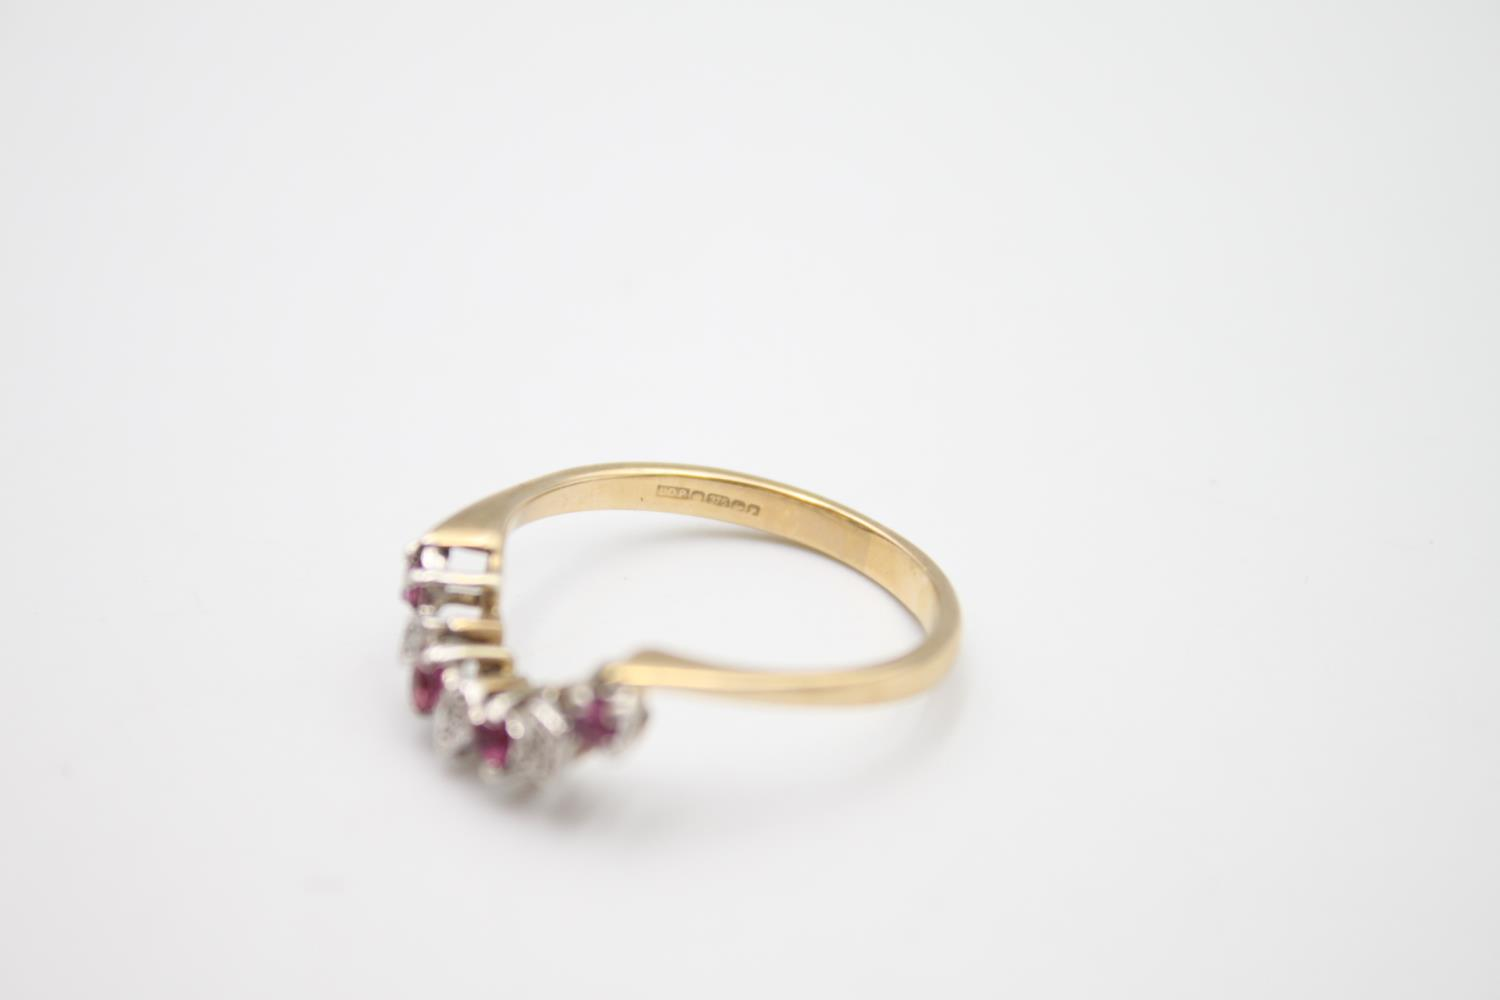 9ct gold diamond & ruby wed-fit chevron ring 2.7g Size S - Image 5 of 5